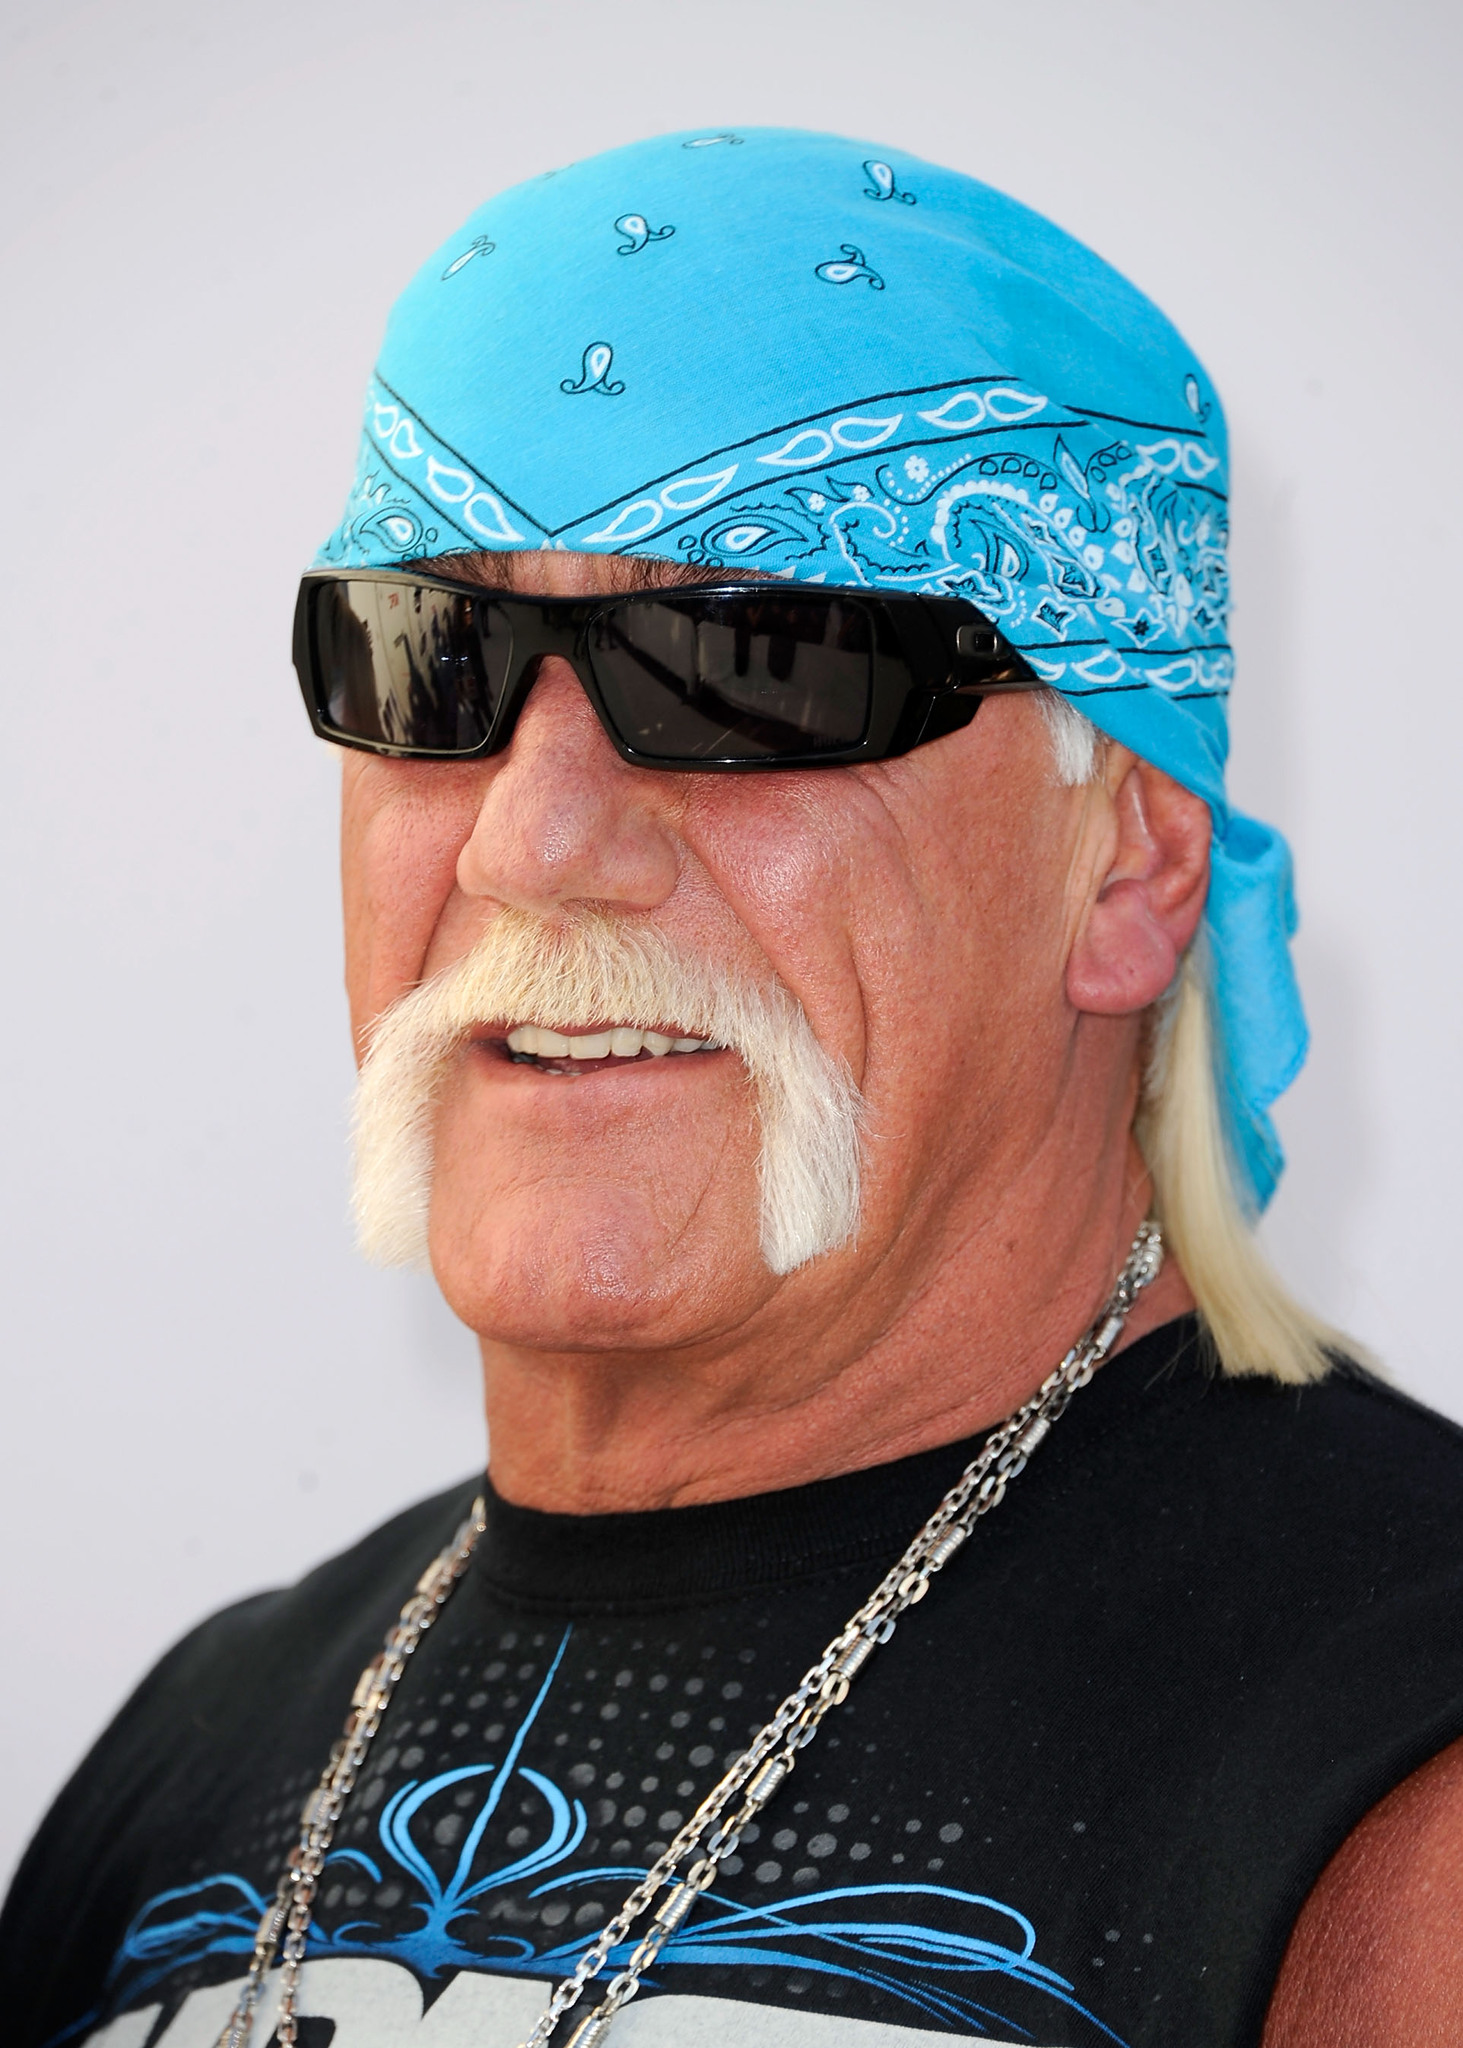 Hulk hogan and wwe-5629